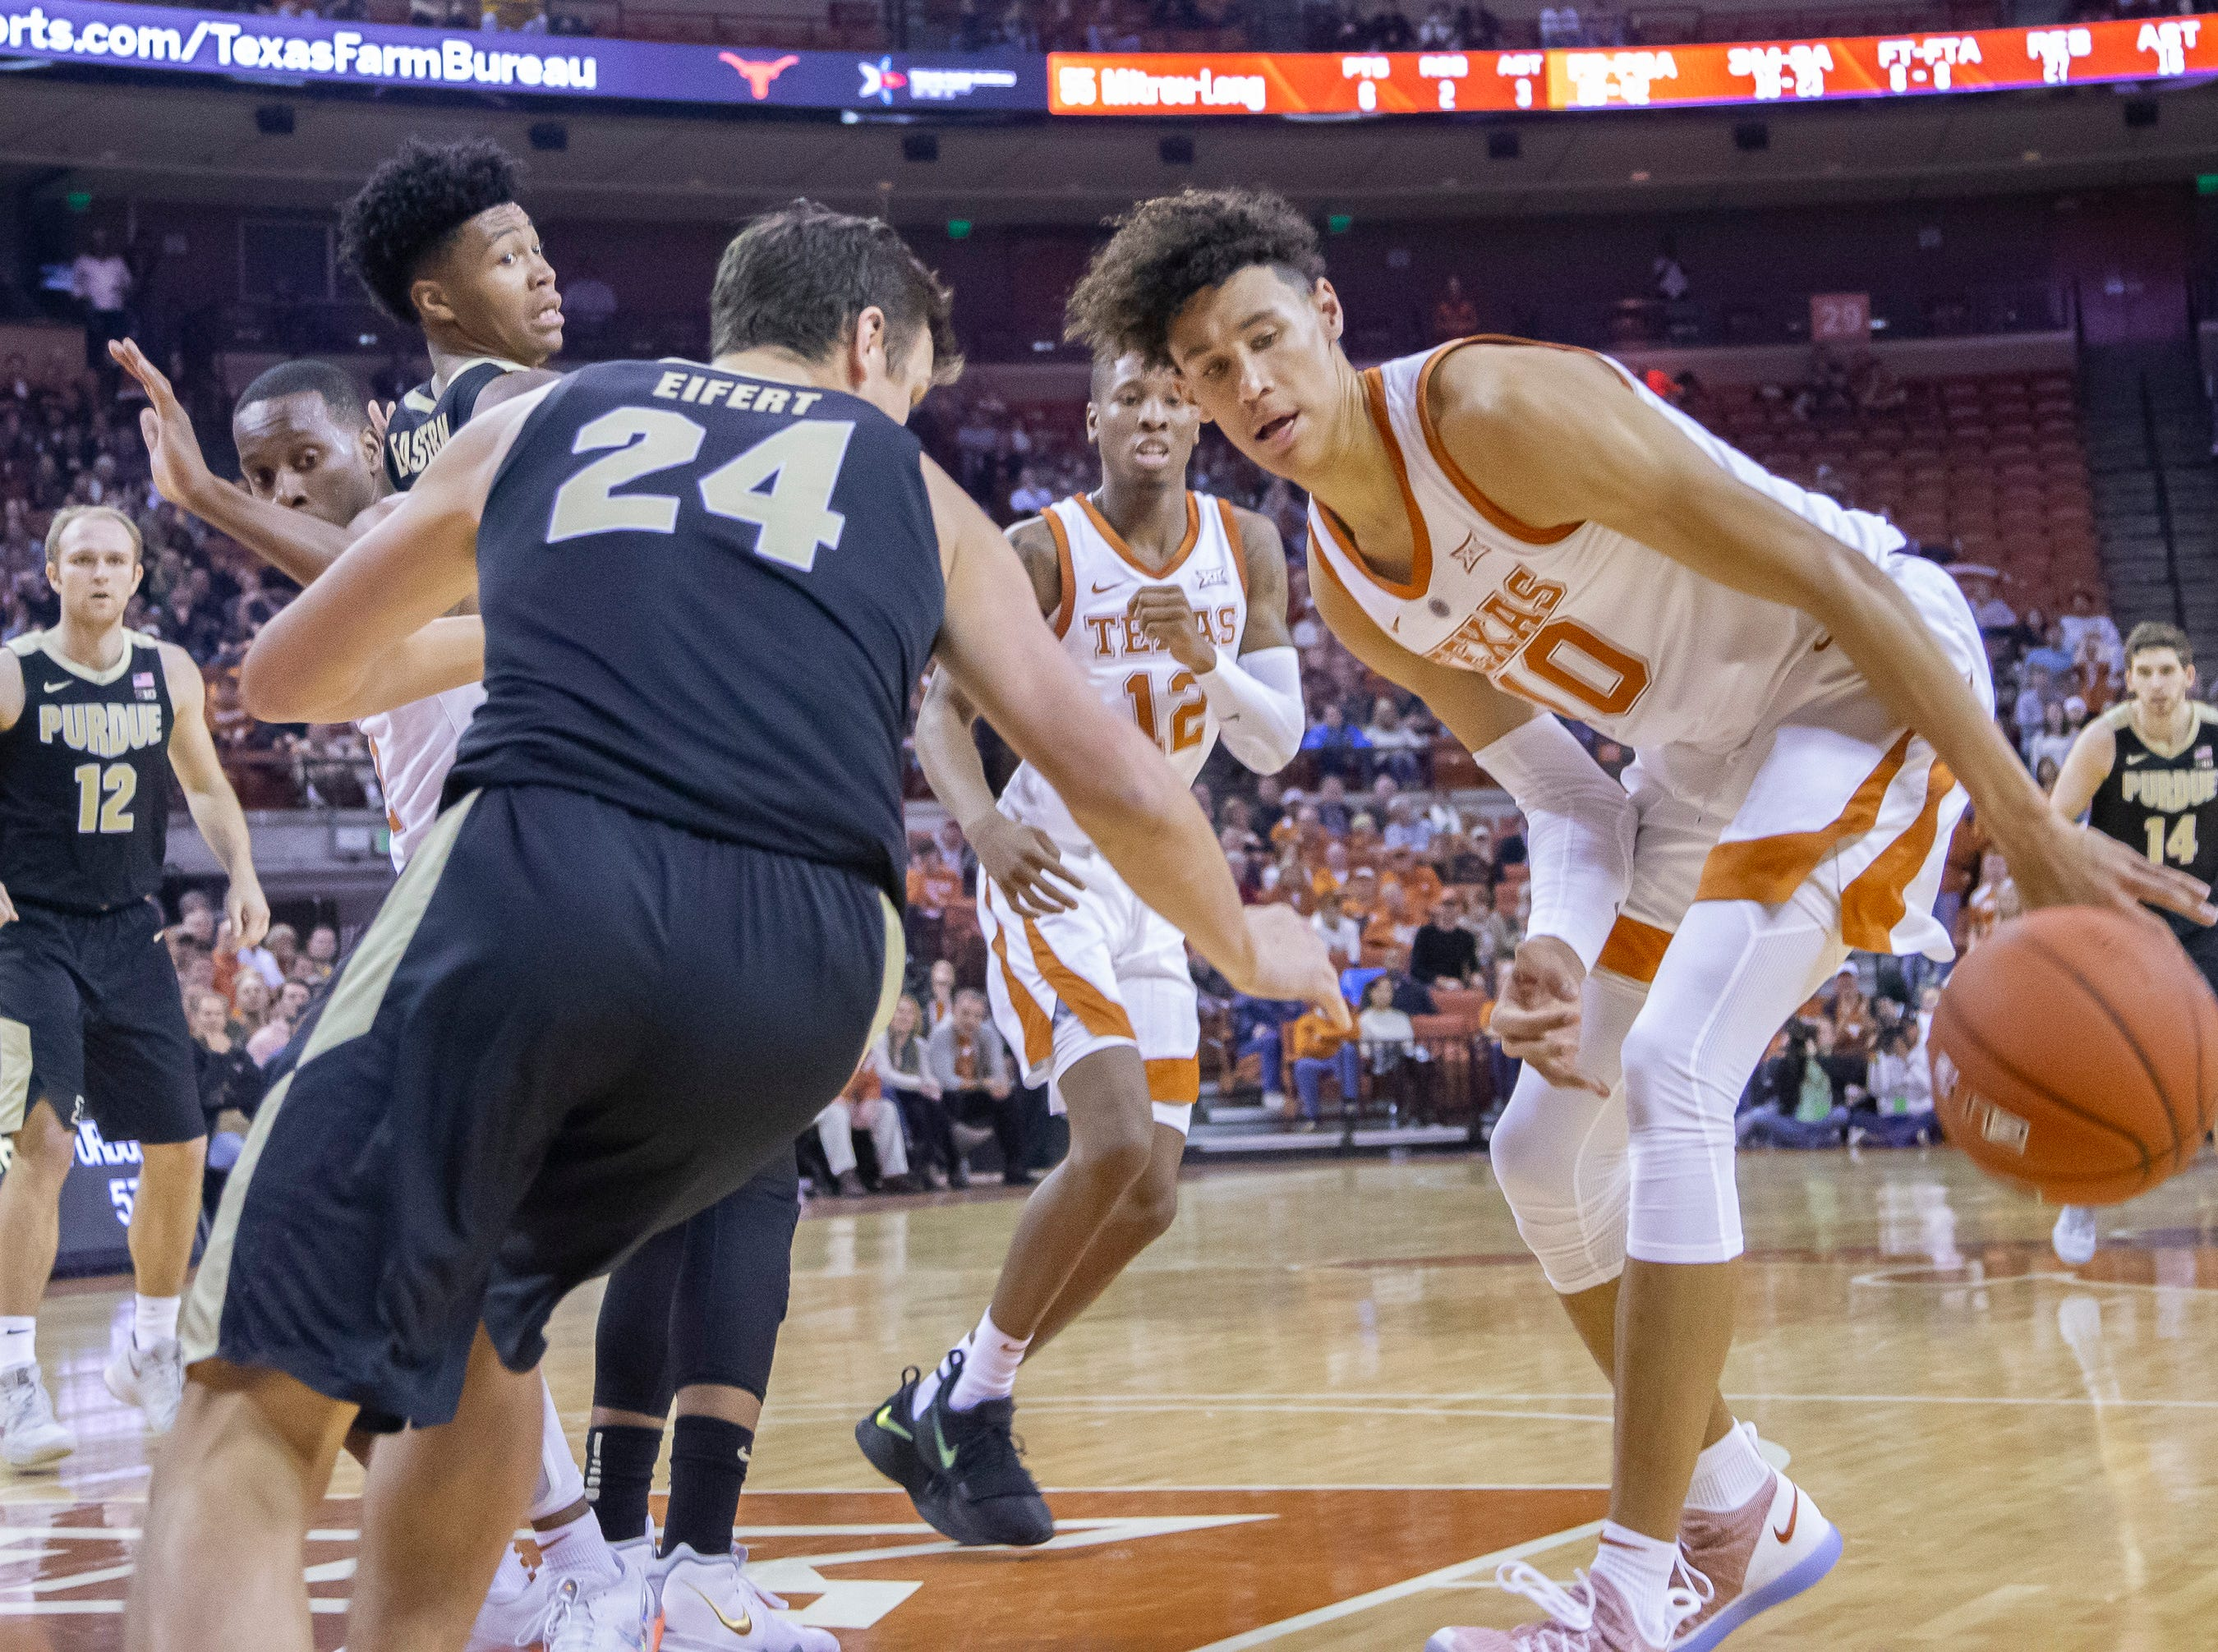 Dec 9, 2018; Austin, TX, USA; Texas Longhorns forward Jaxson Hayes (10) deflects the ball away from Purdue Boilermakers forward Grady Eifert (24) d2h\ at Frank Erwin Center. Mandatory Credit: John Gutierrez-USA TODAY Sports